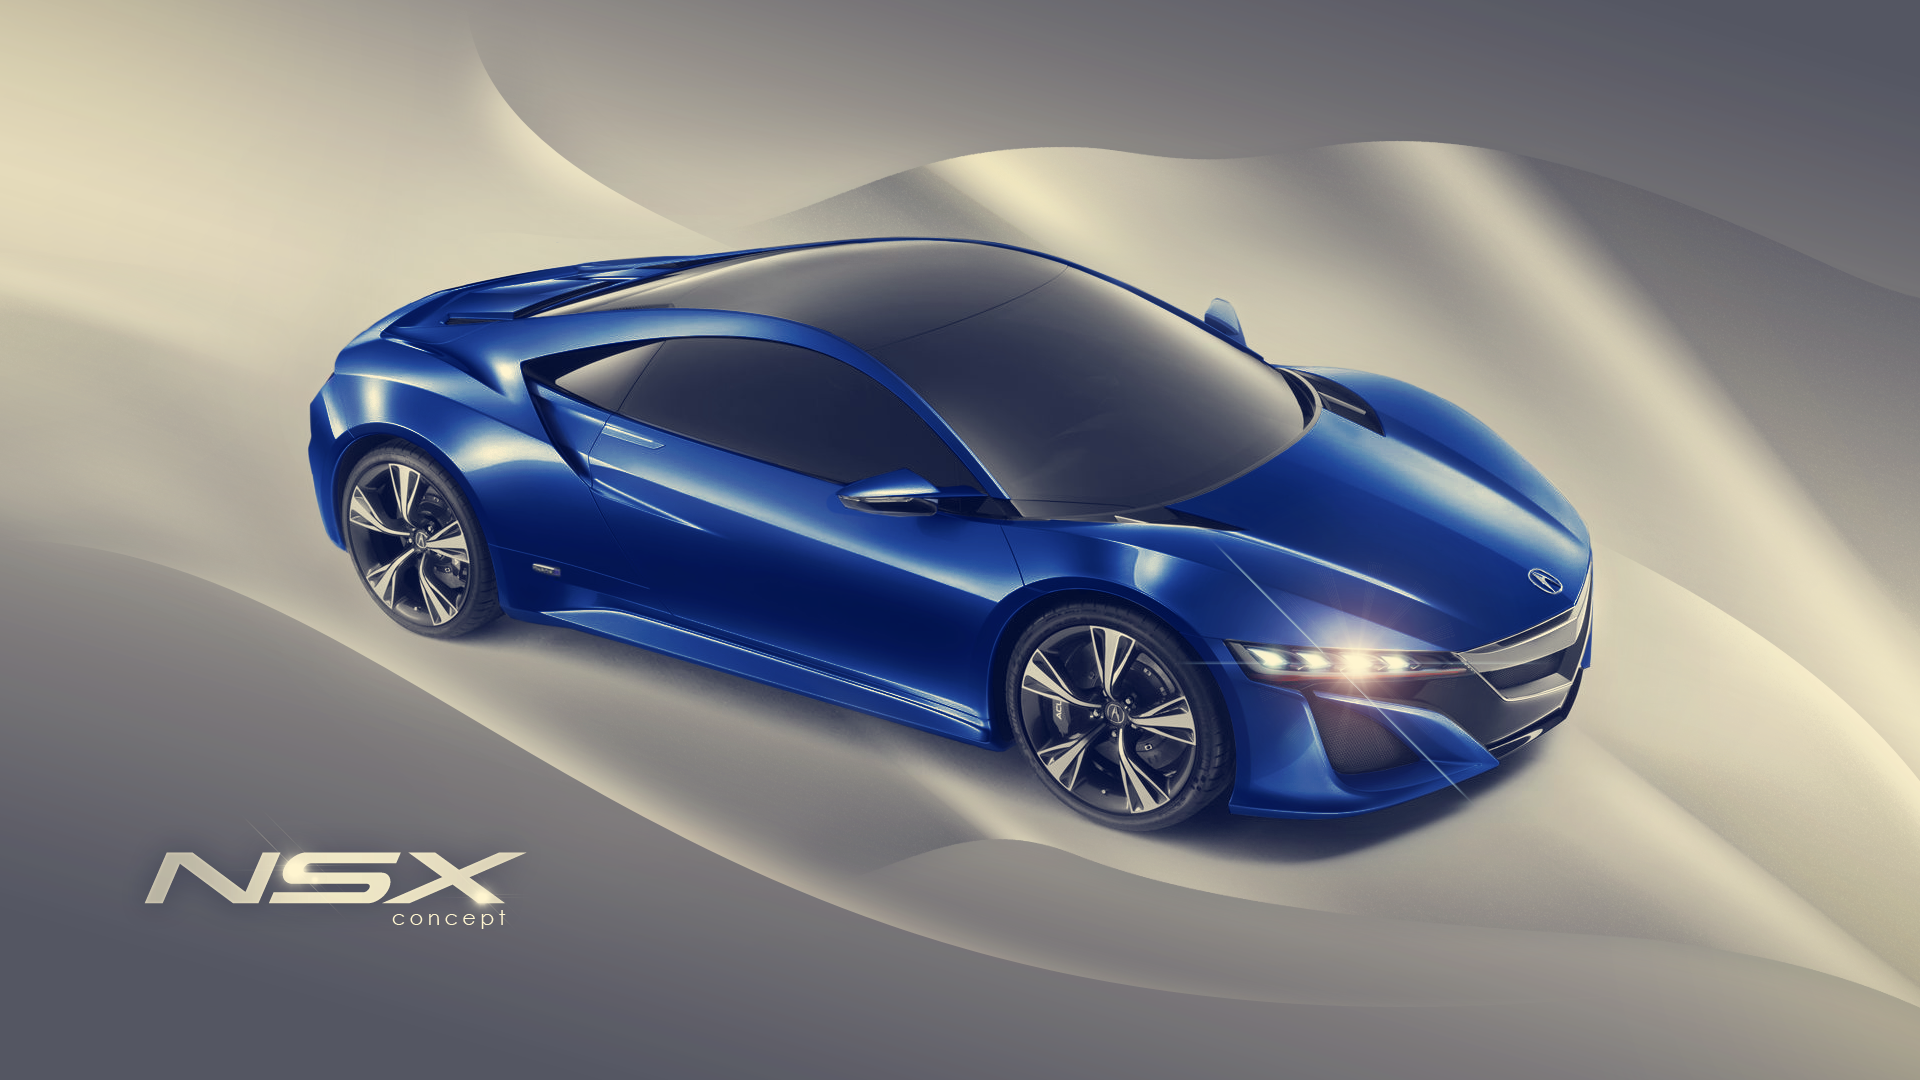 download Acura NSX Concepet Wallpaper